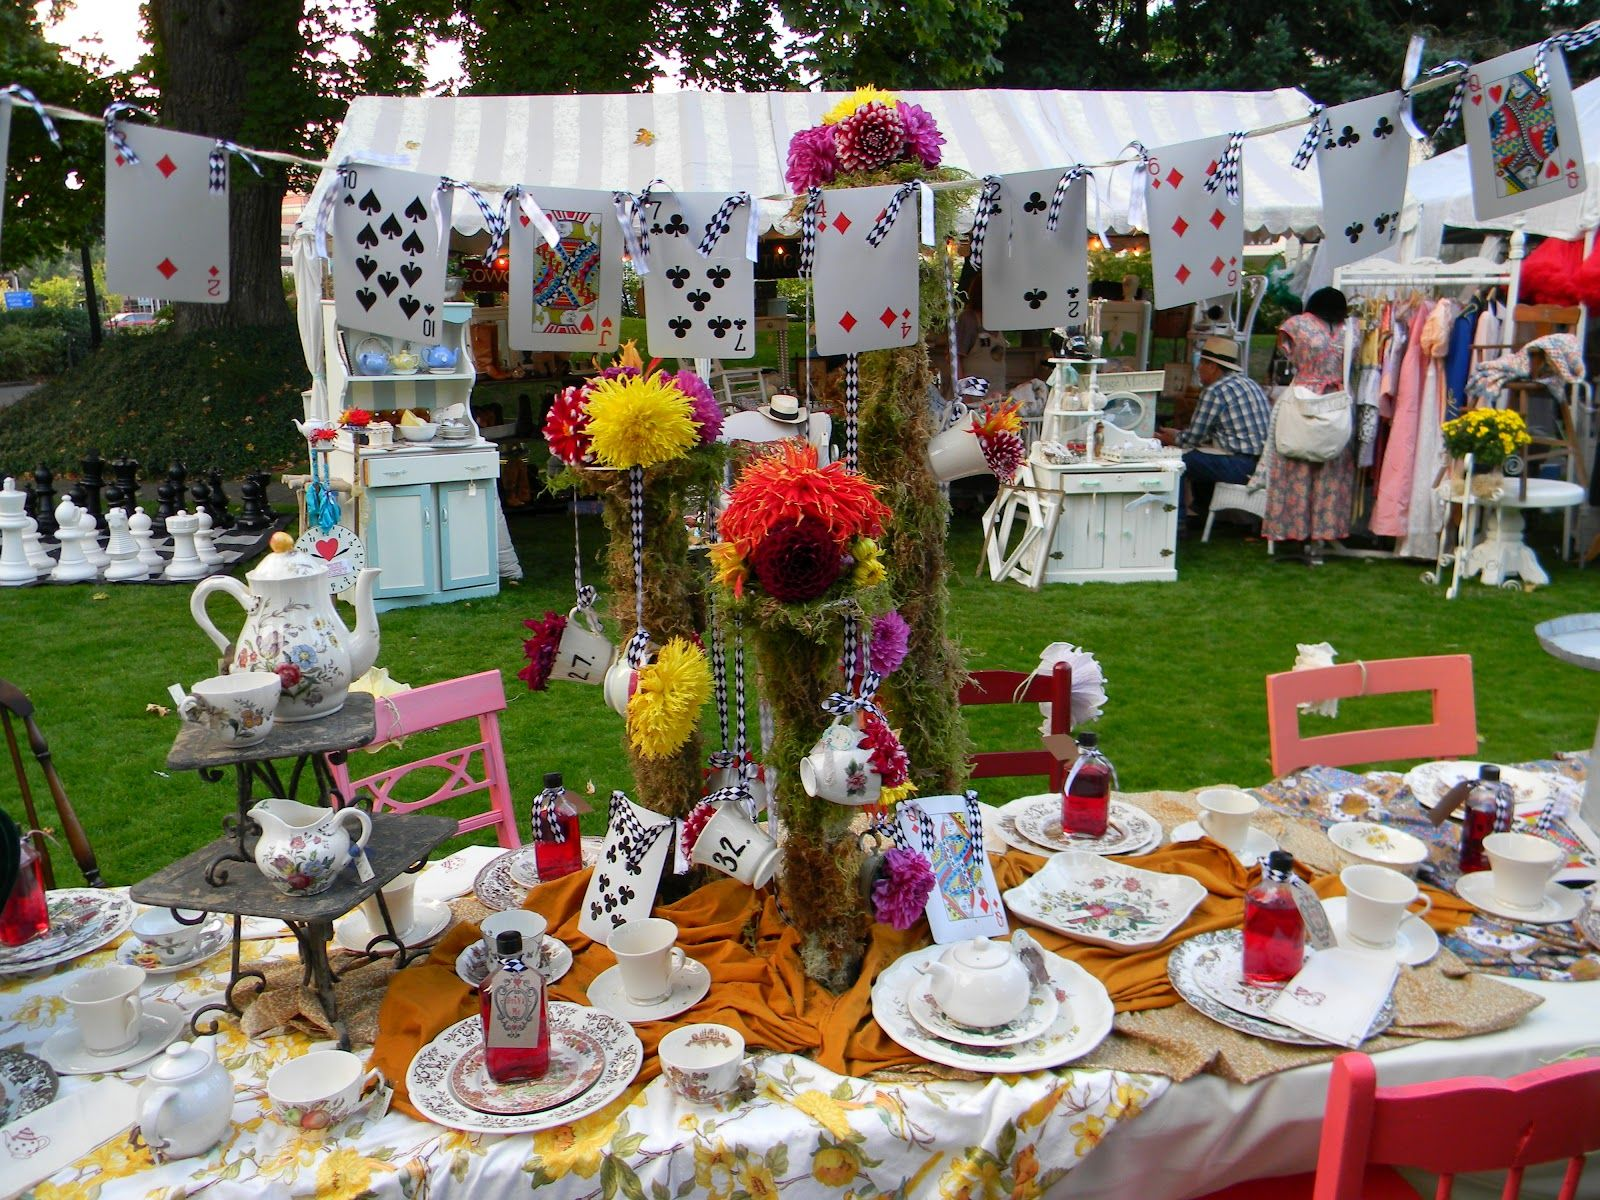 Mad hatter tea party decoration ideas - Four Fun Summer Garden Party Themes Secret Salons Magazine Alice In Wonderland What